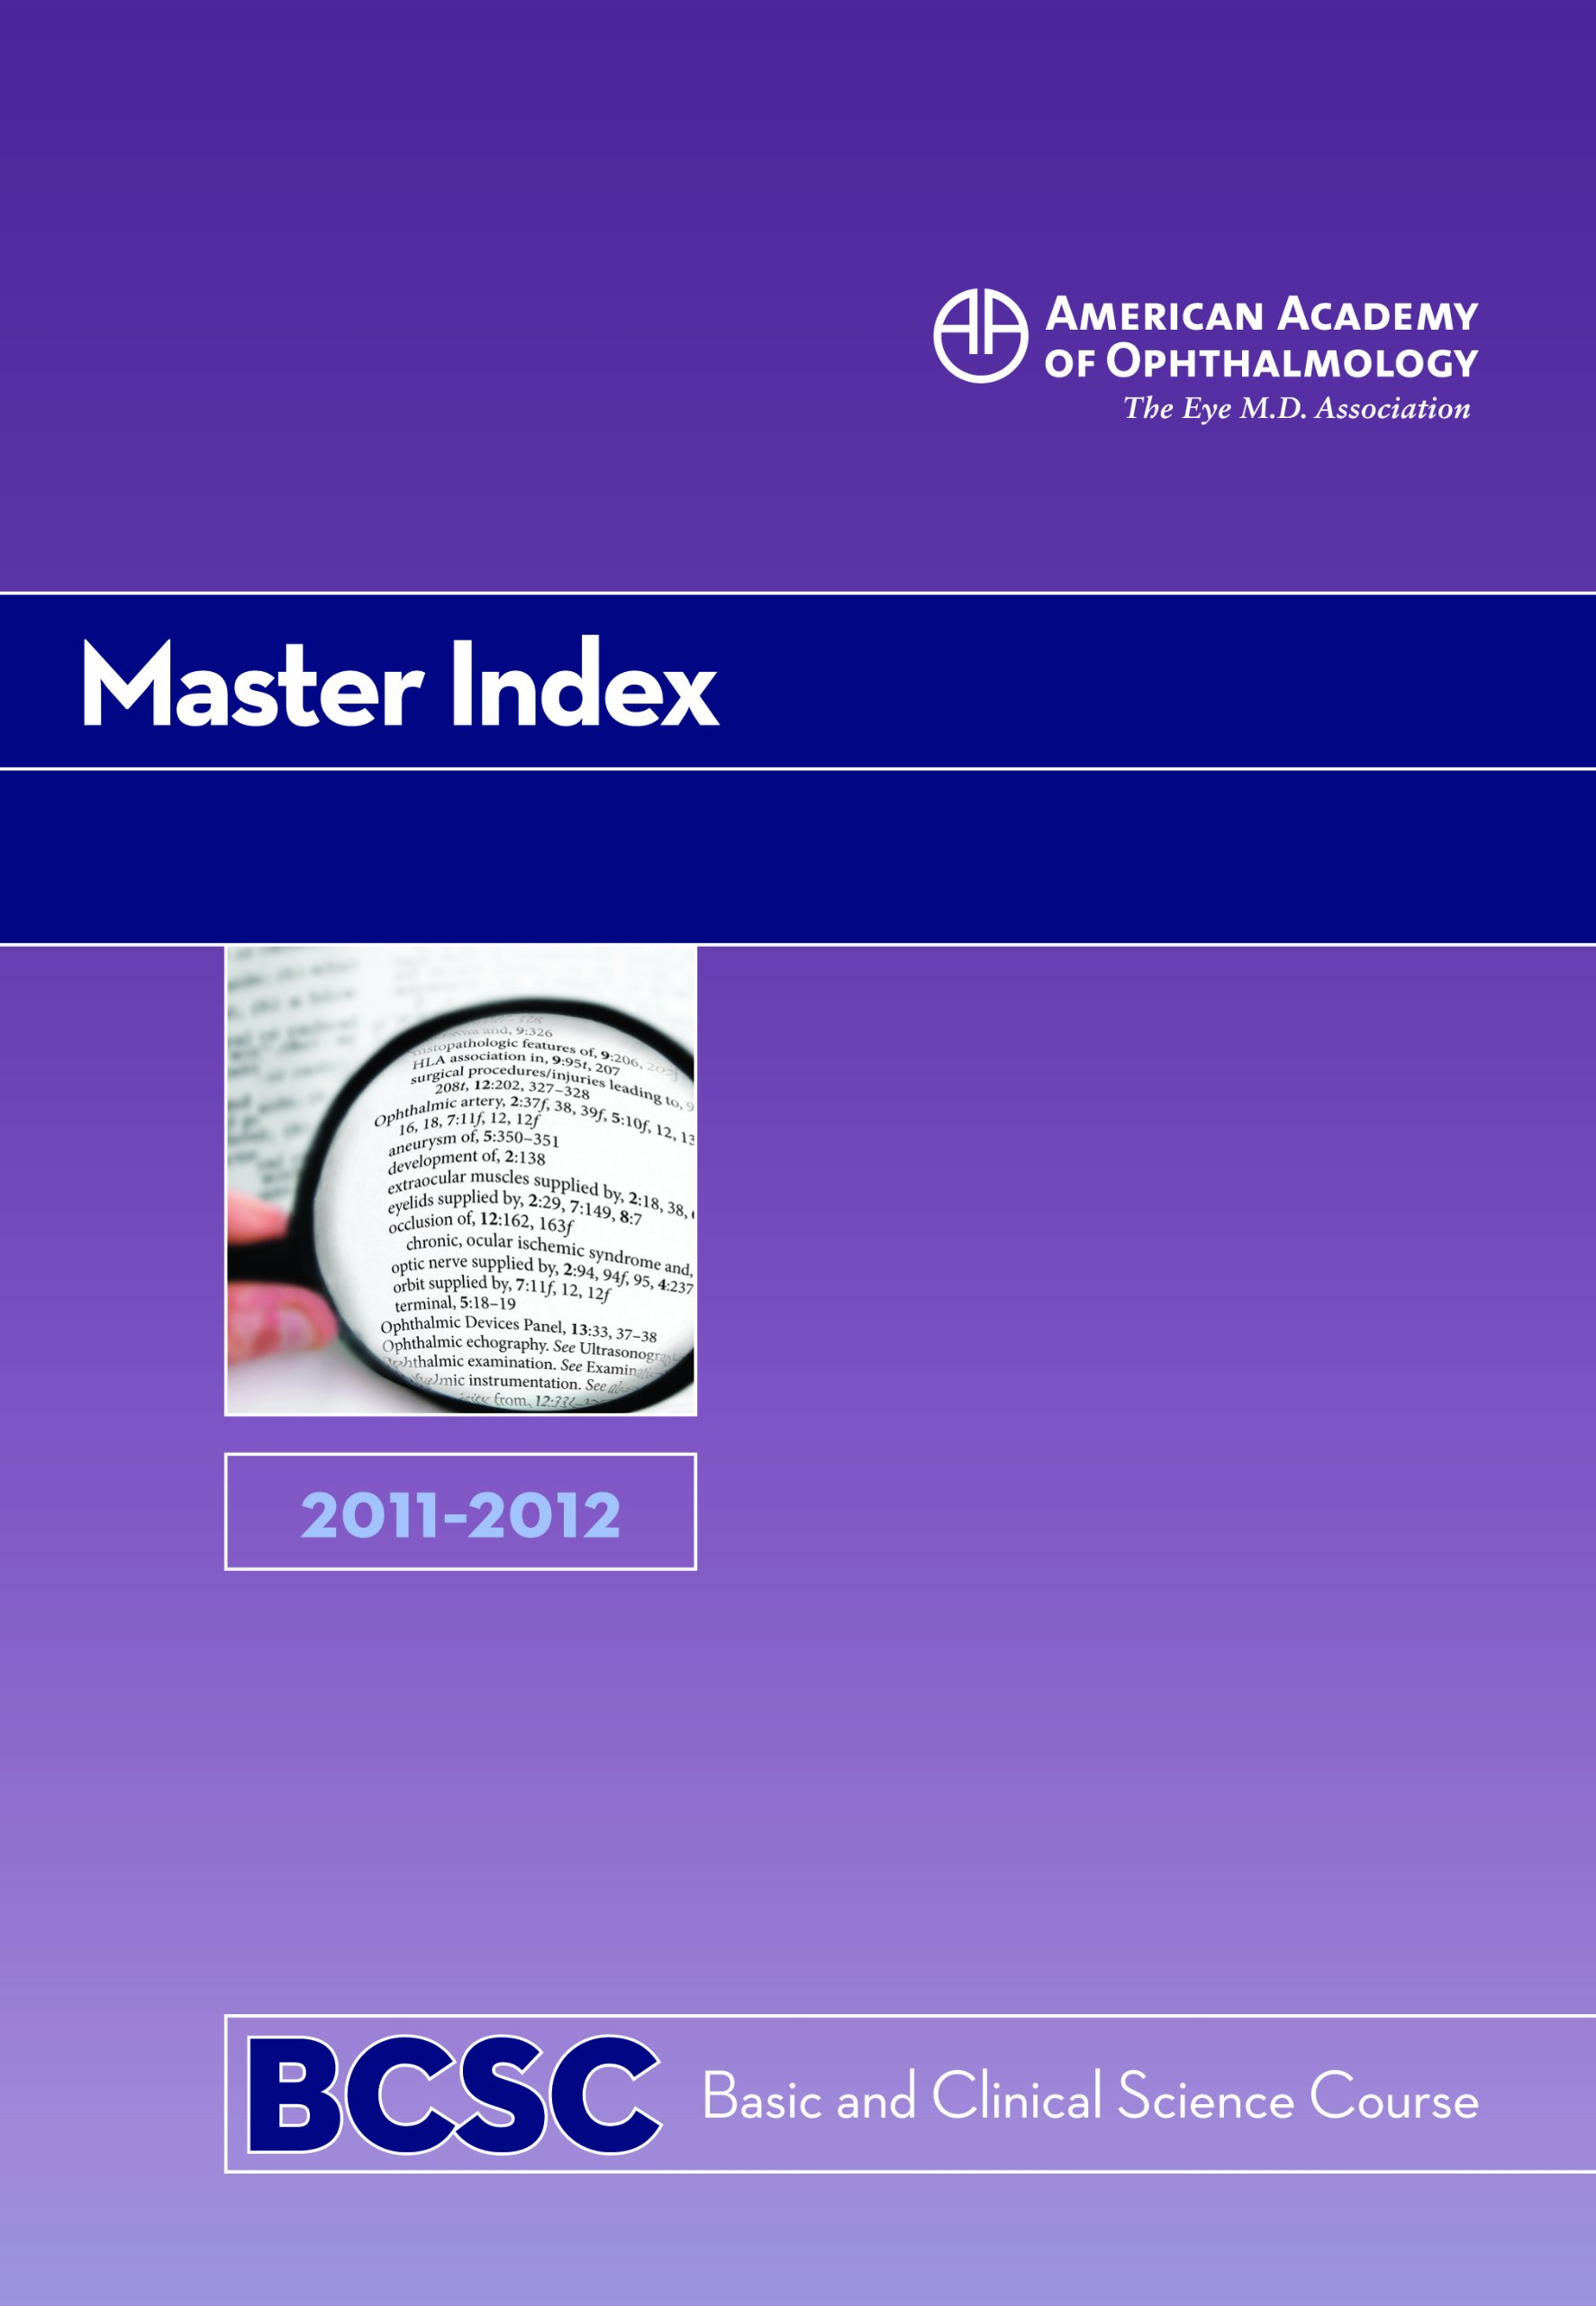 Basic and Clinical Science Course (BCSC): Master Index 2011-2012 pdf